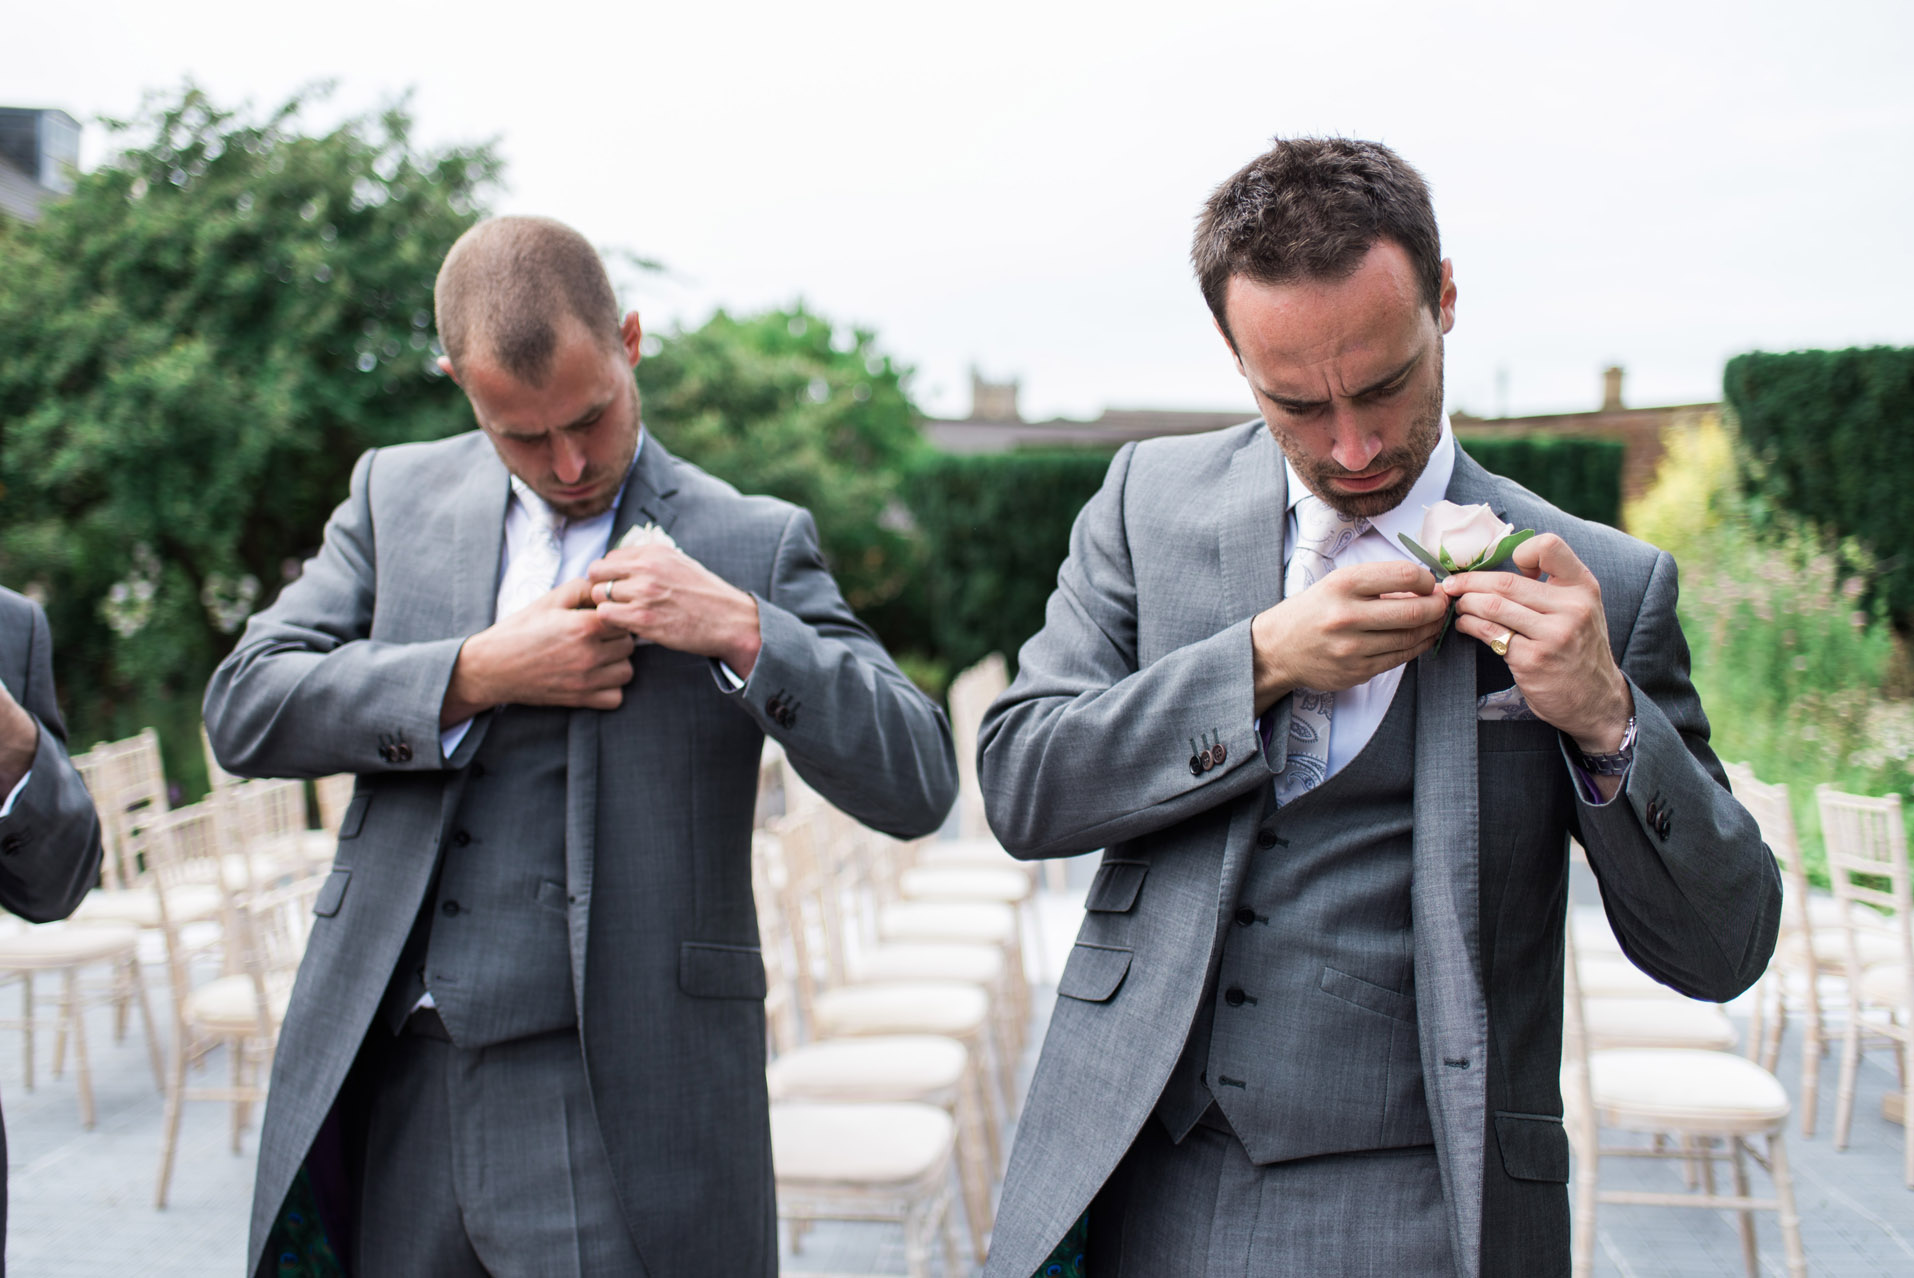 Groom puts on button hole